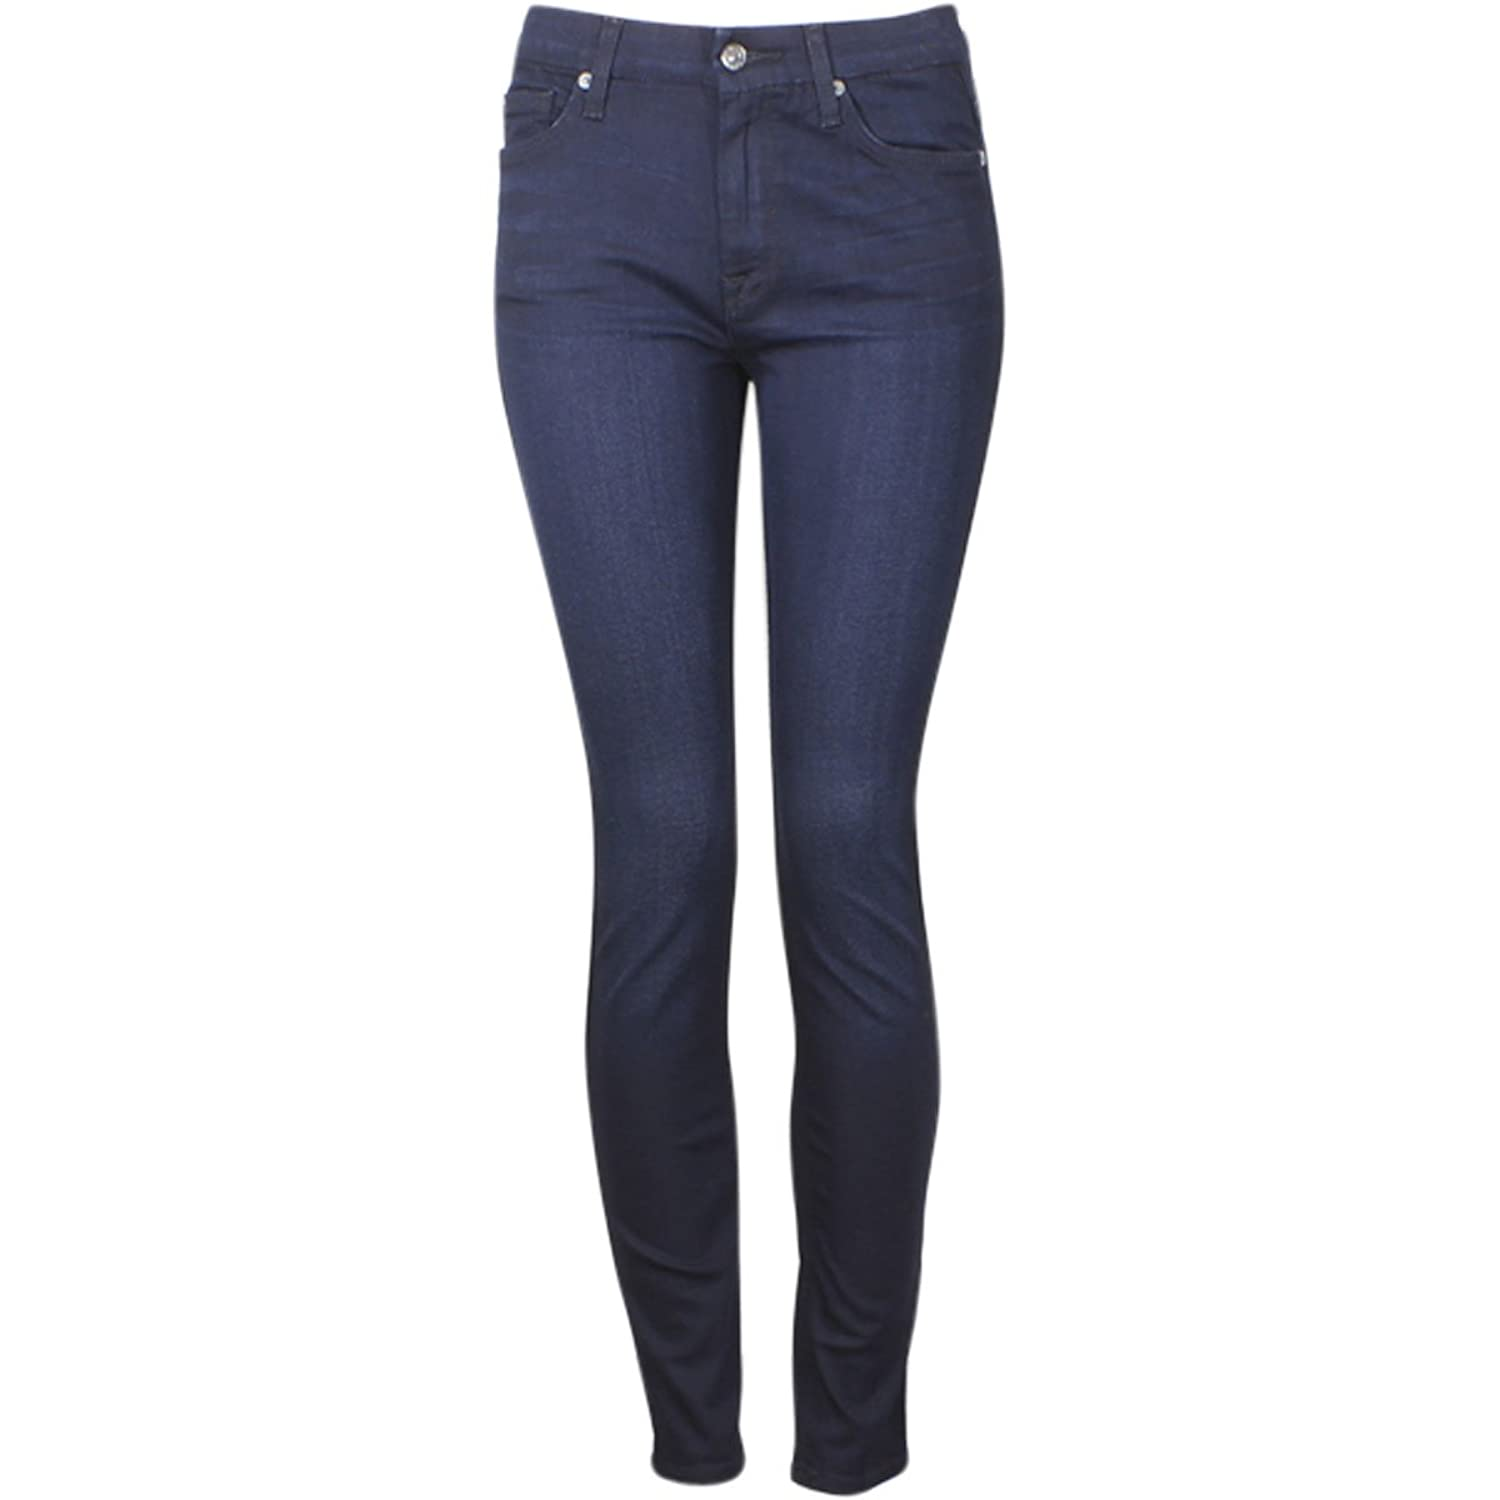 7 For All Mankind Women's b(air) HW Skinny Jeans